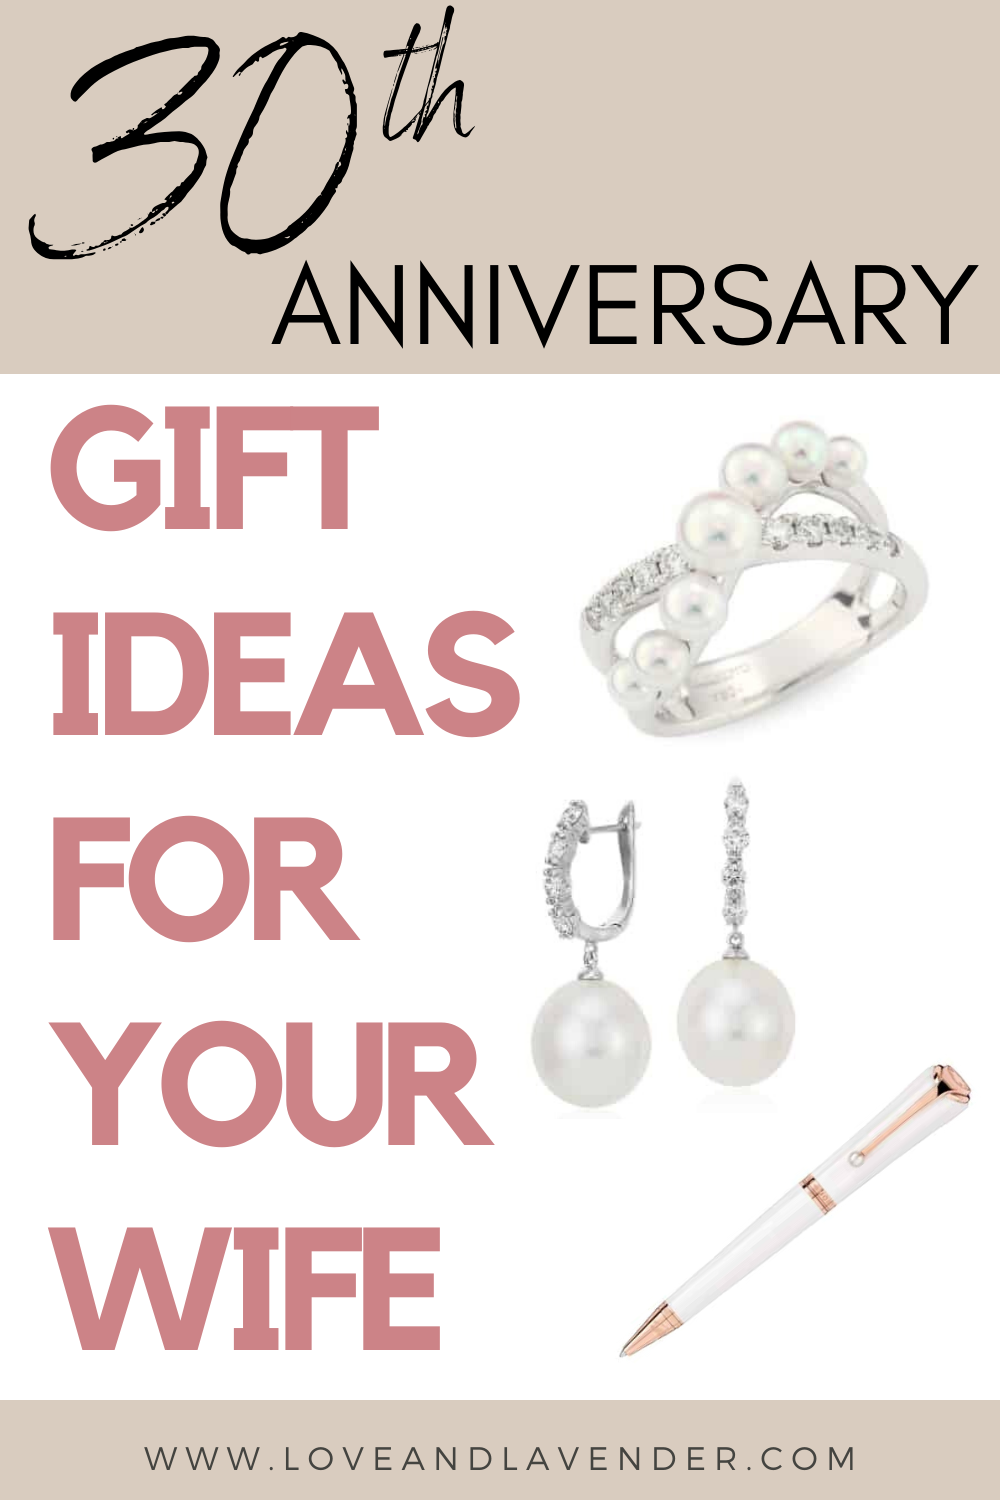 Pin on Anniversary Gifts for Her